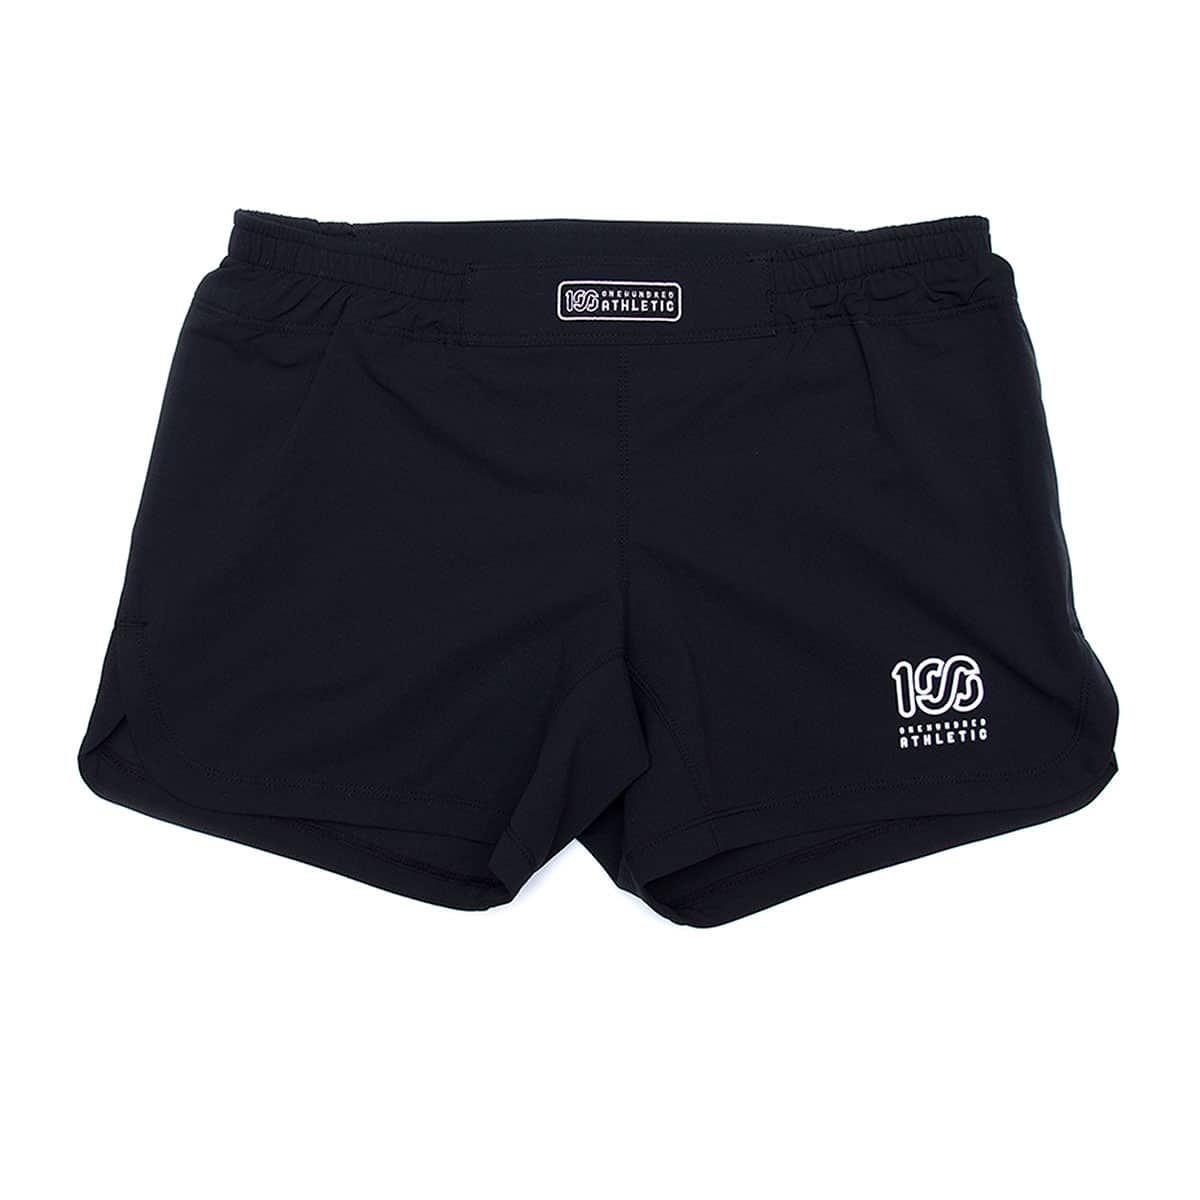 100A DRY WORKOUT SHORTS BLACK 20SU-I_photo_large